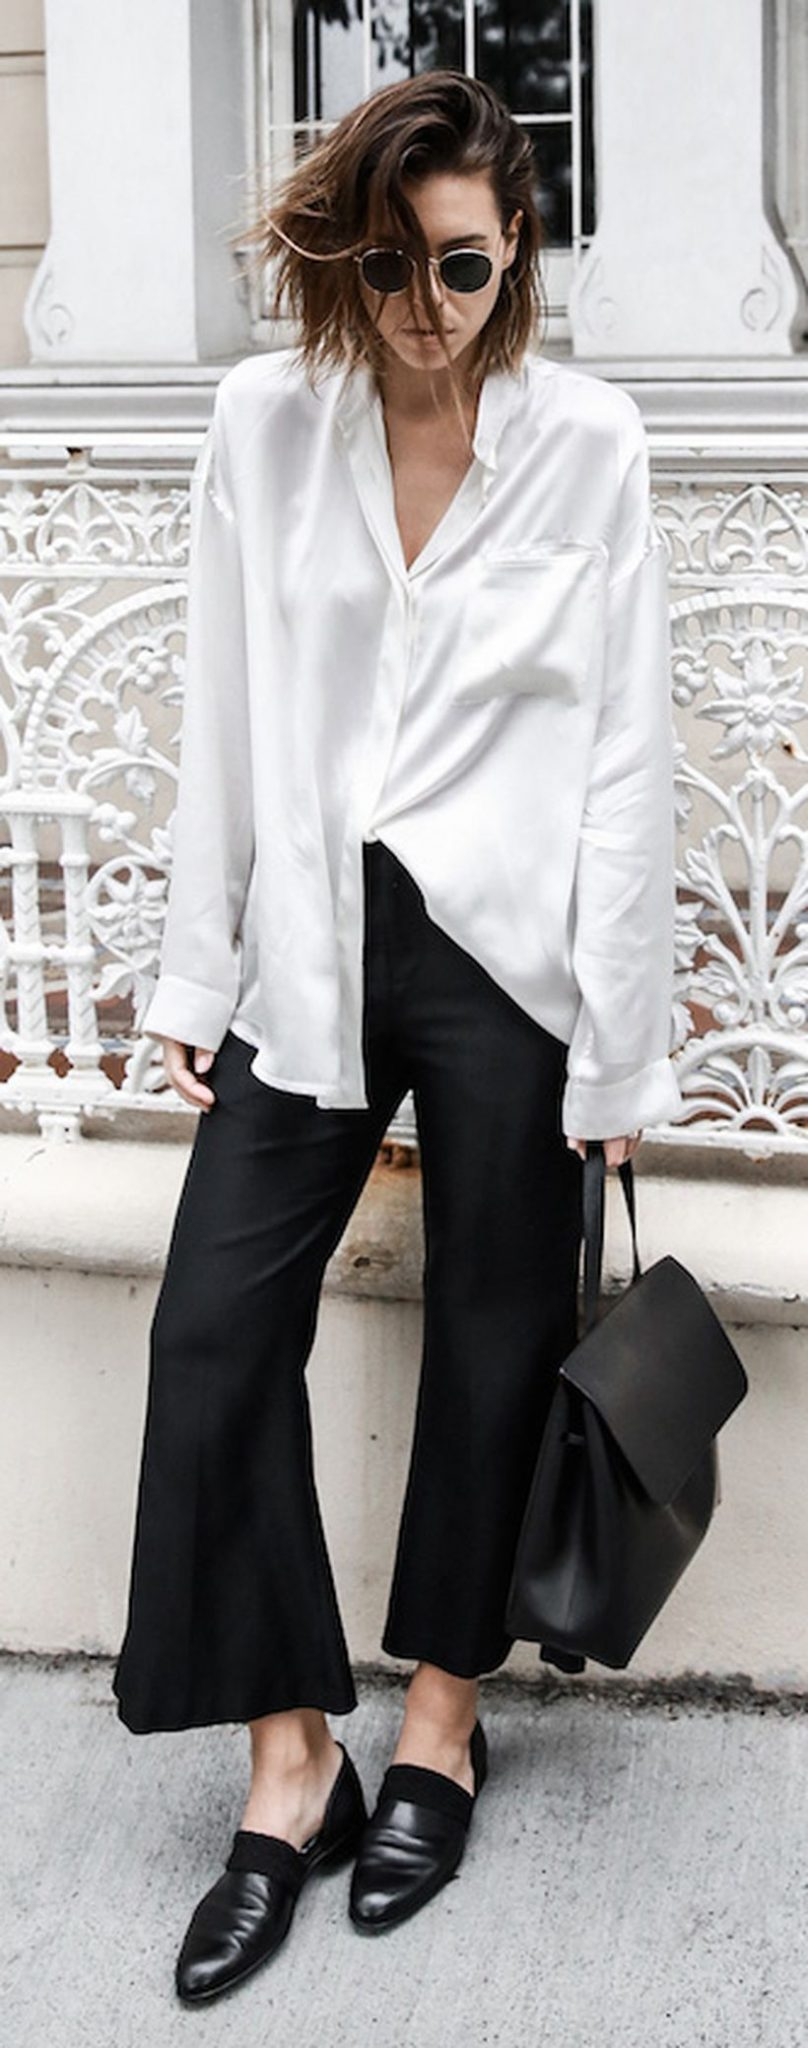 Awesome oversized white shirt outfit style ideas 35